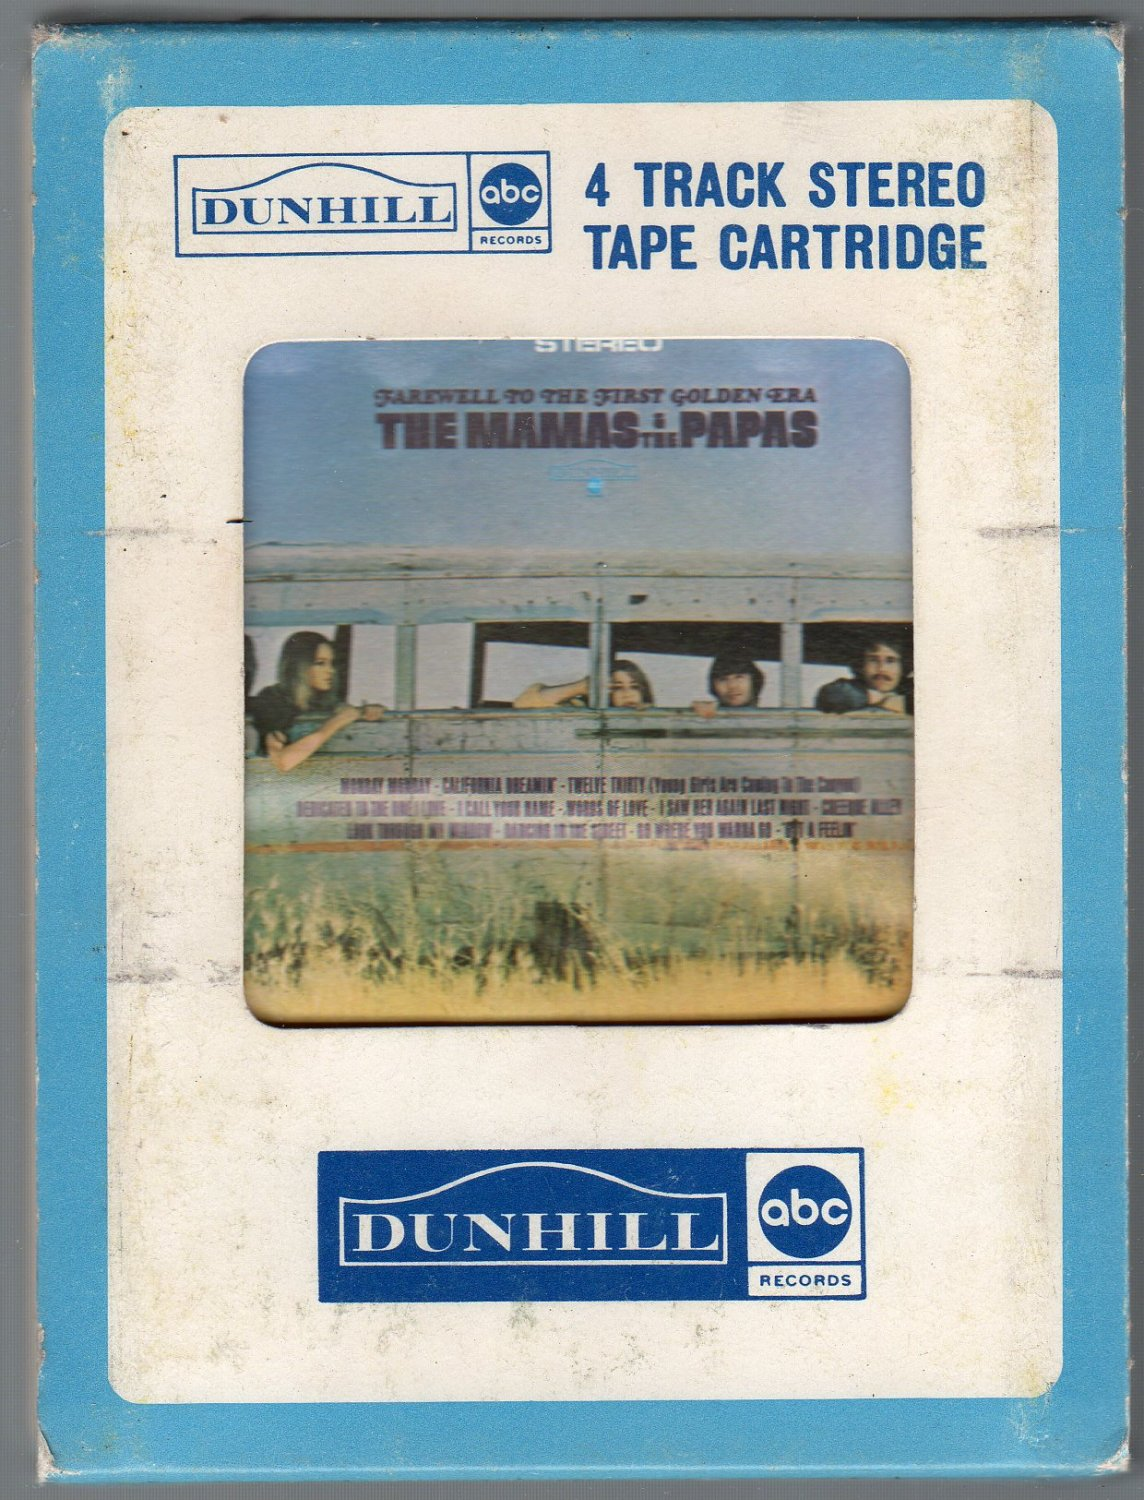 The Mamas & The Papas - Farewell to The First Golden Era 1967 Dunhill A27 4-track tape